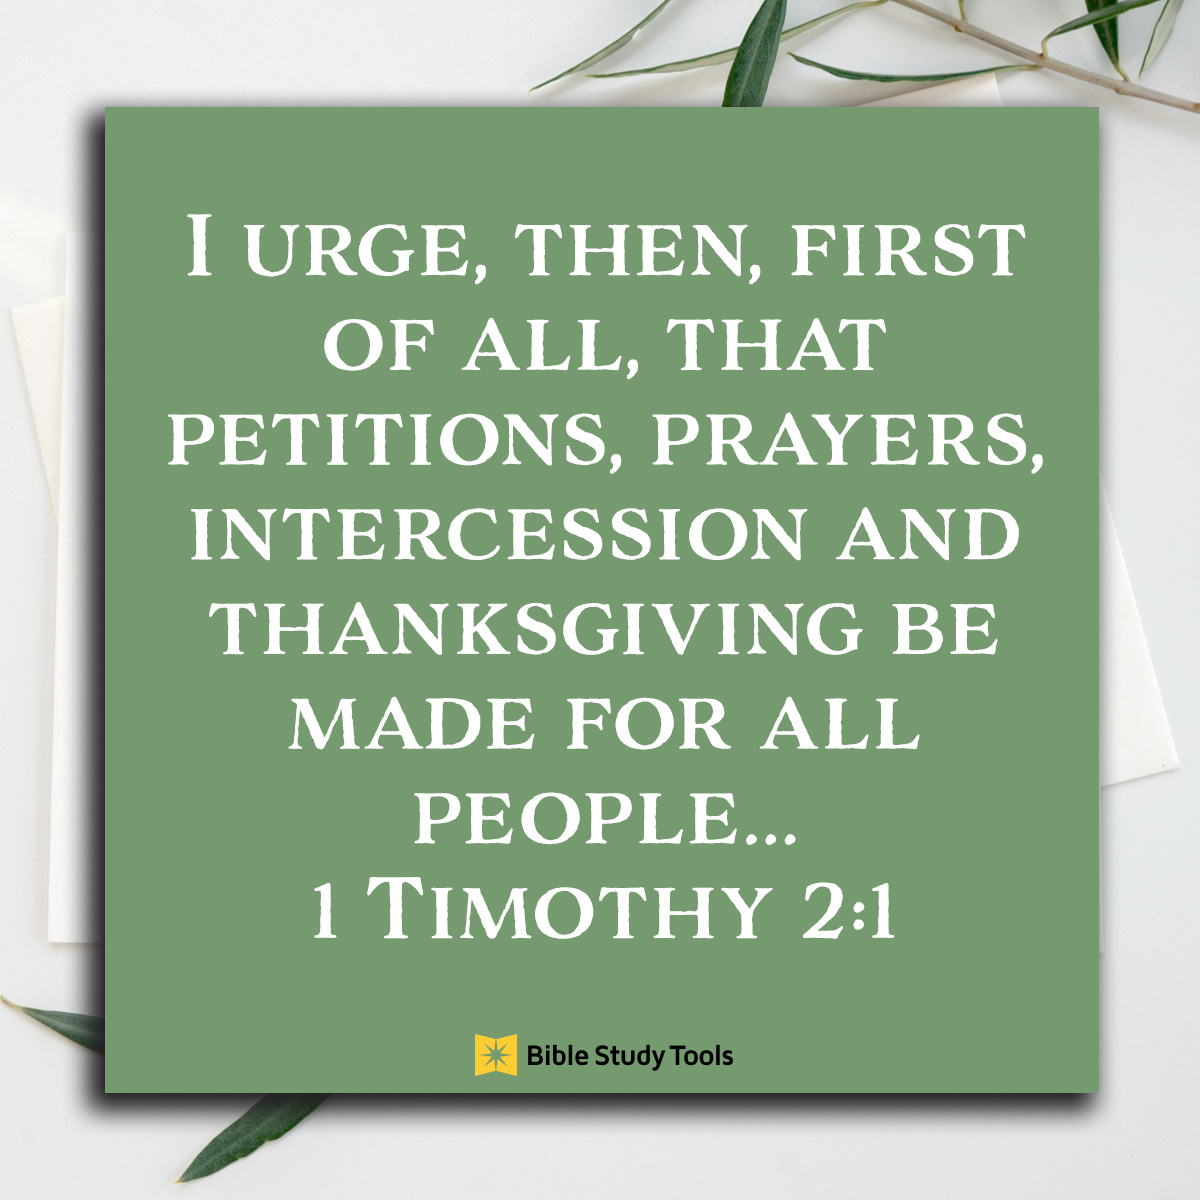 1 Timothy 2:1, inspirational image